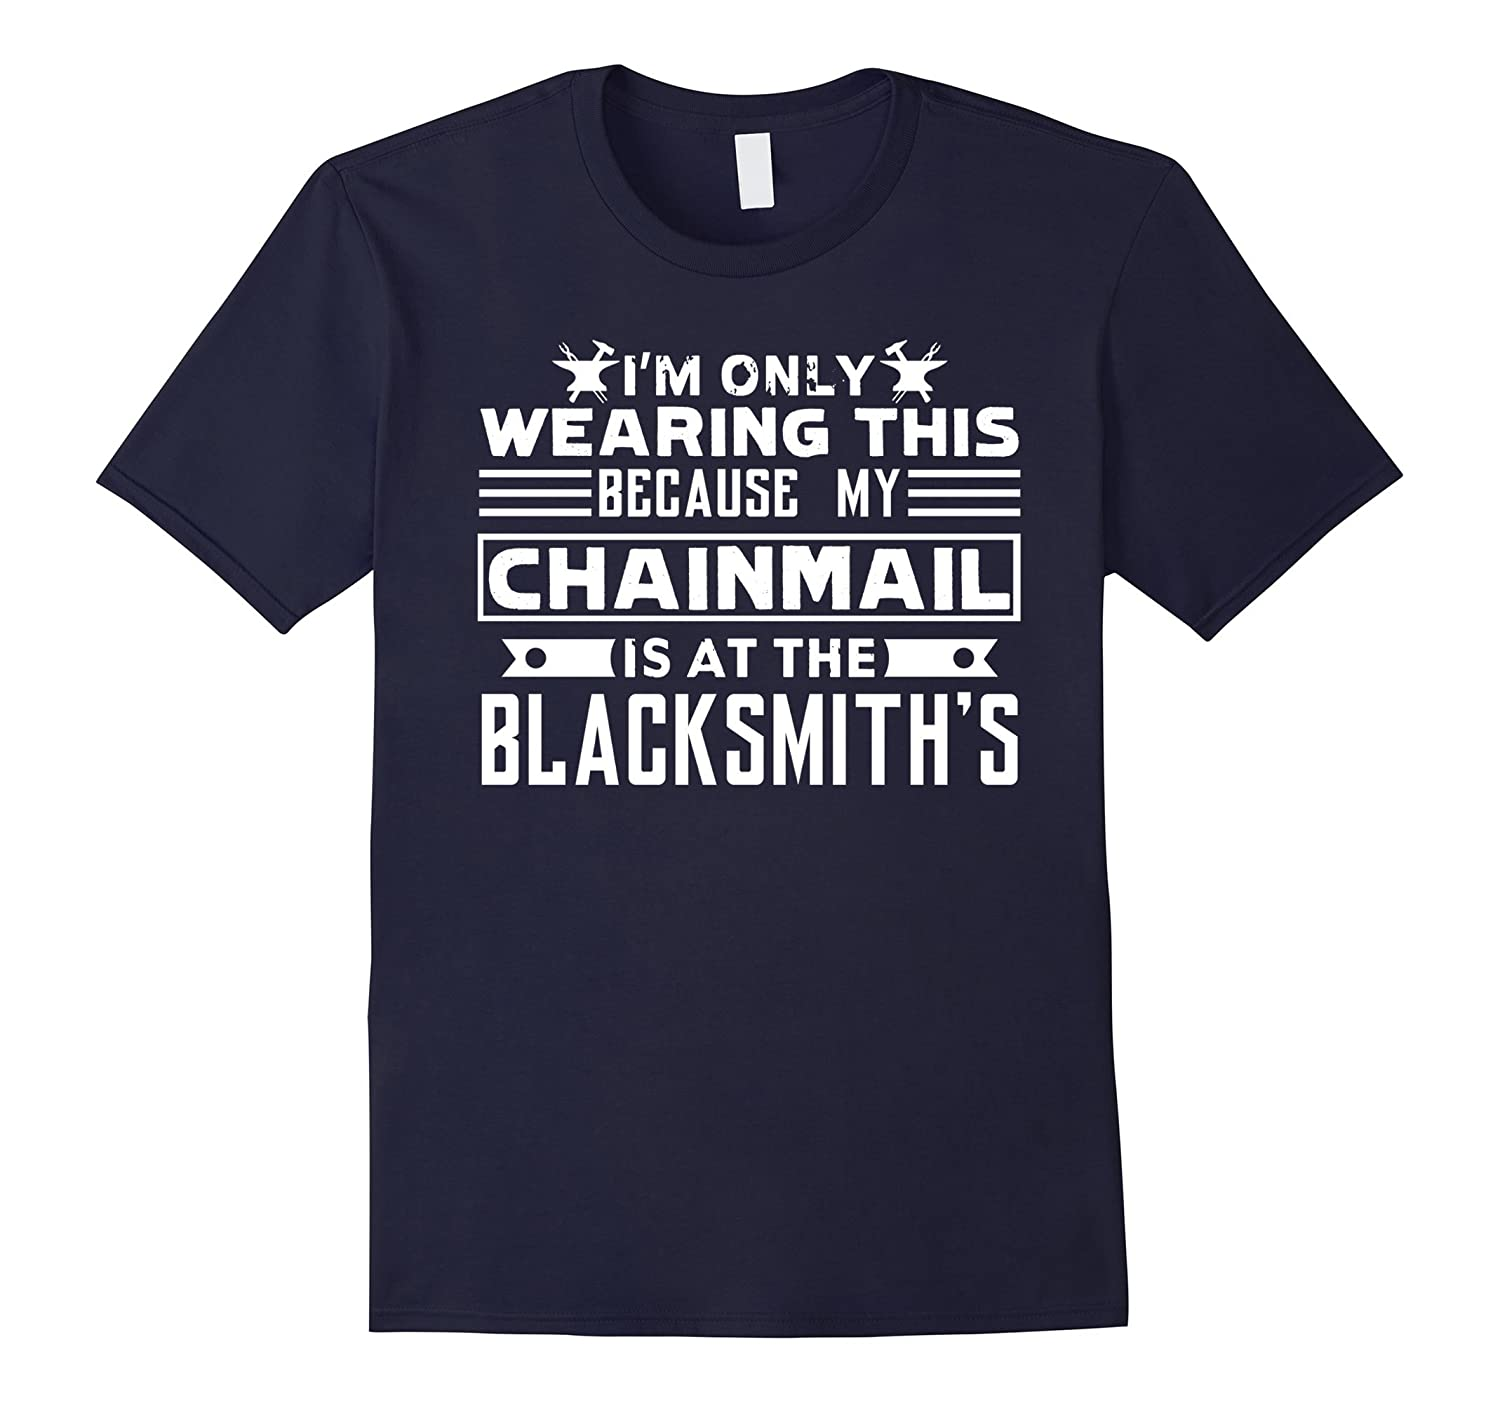 Blacksmith T shirt - My Chainmail Is At The Blacksmith-TD